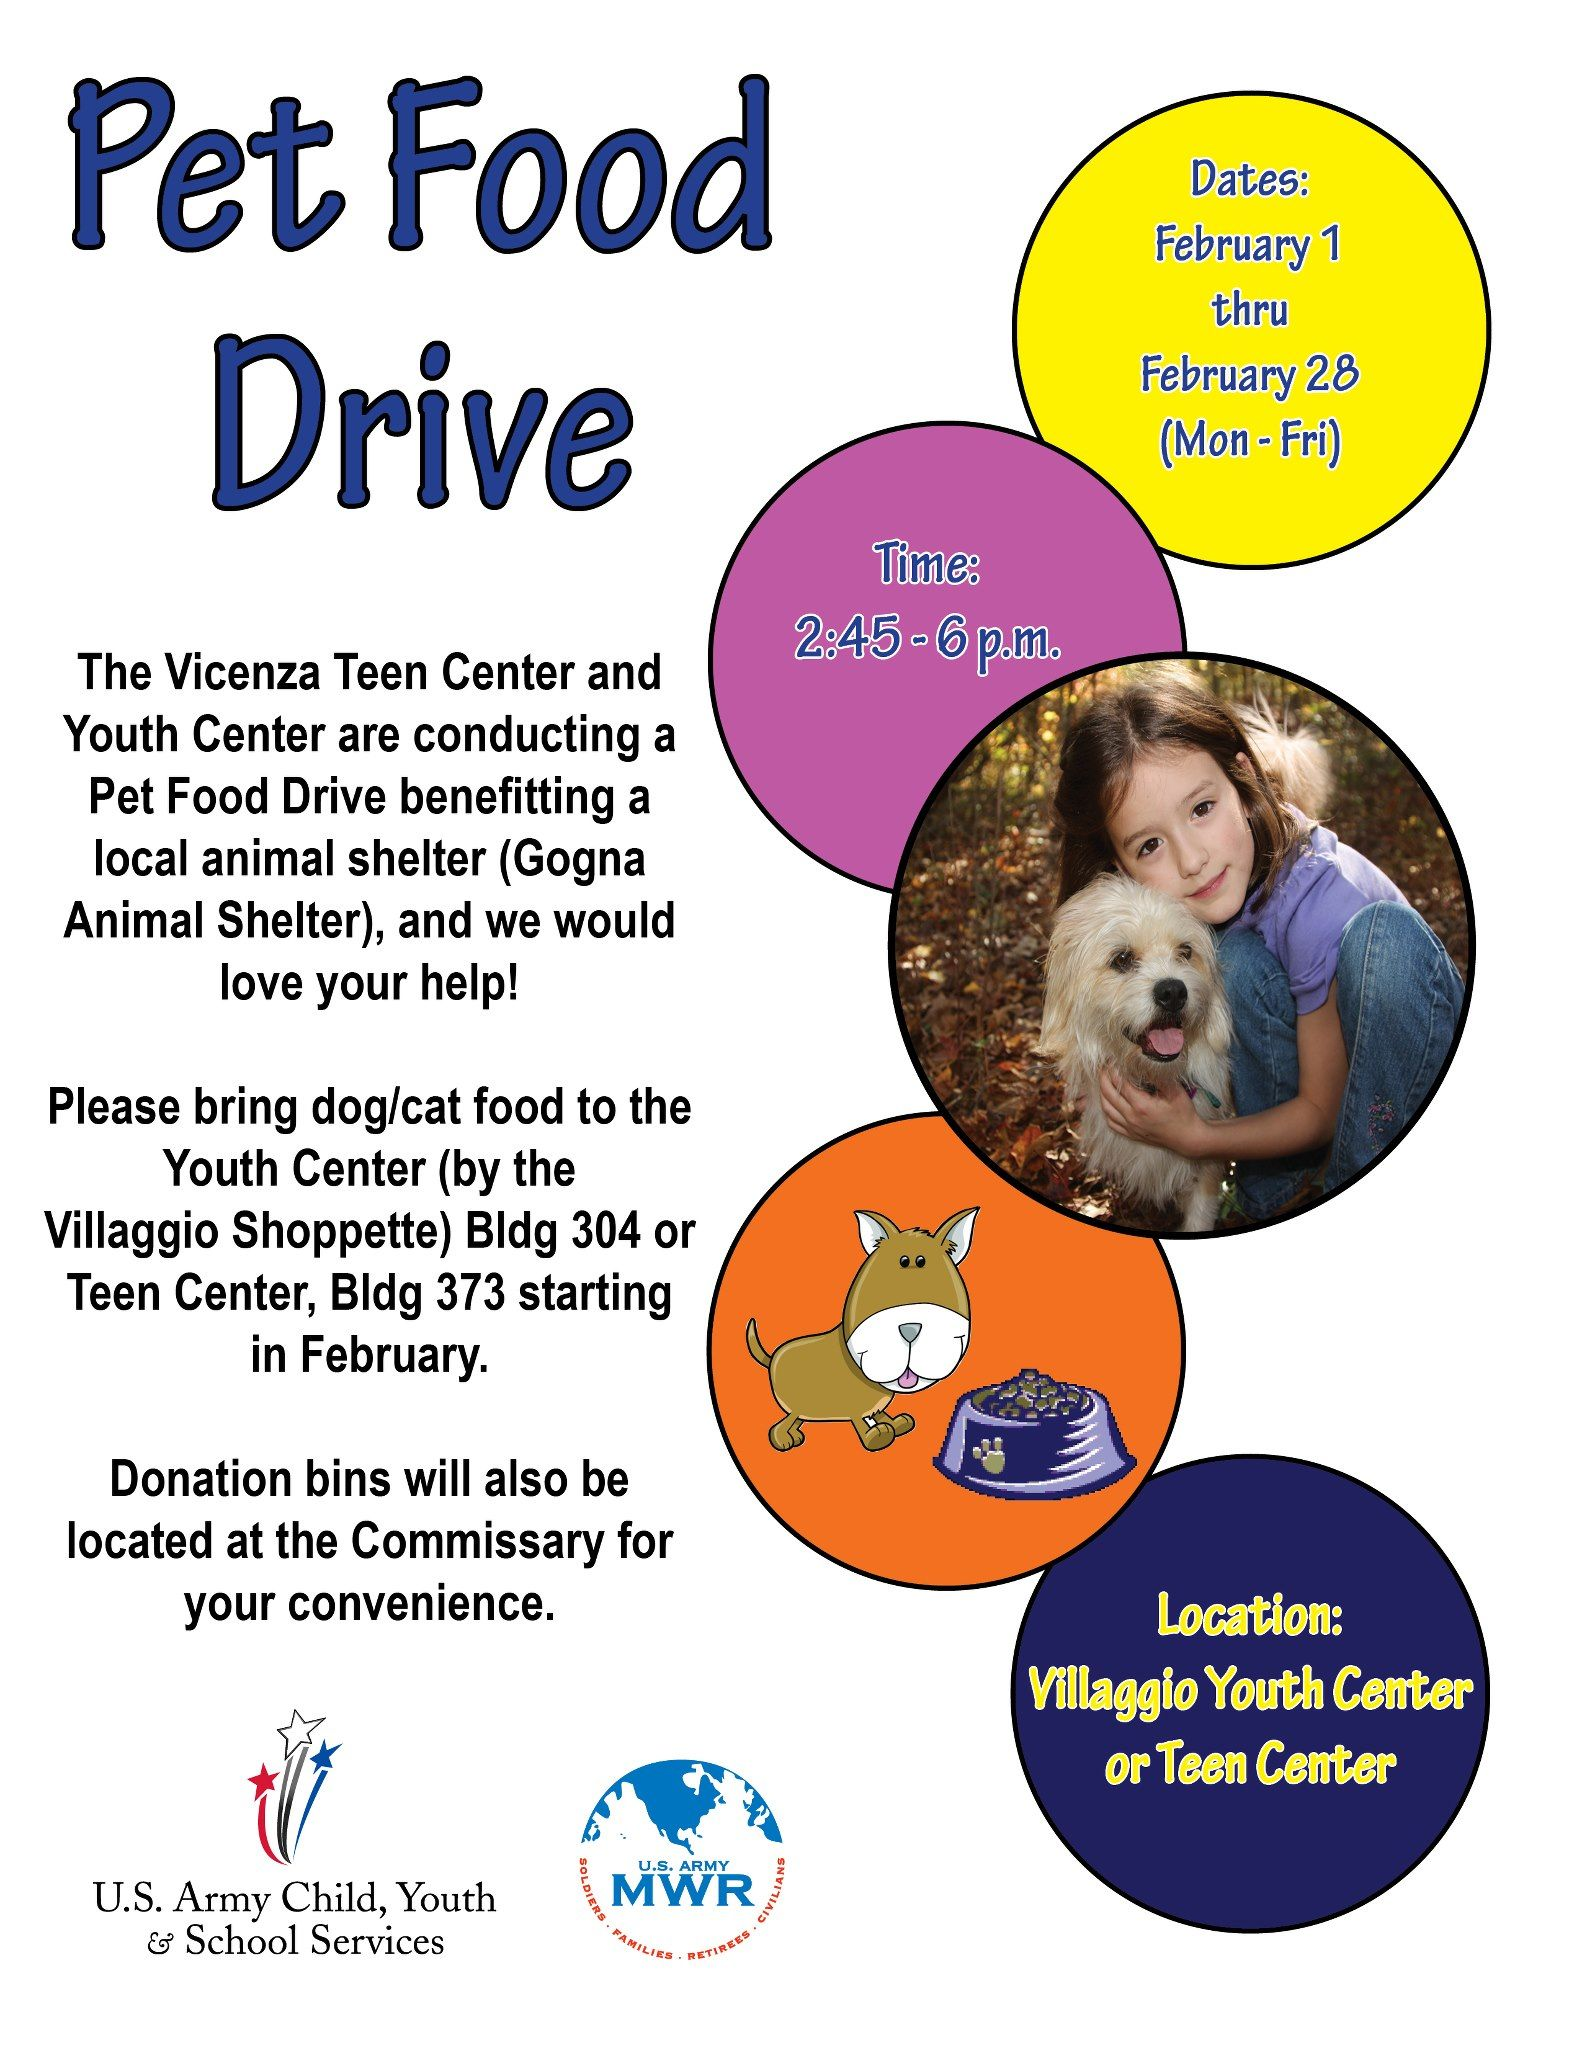 Pin By Becky Hranicky On Scouting Animal Shelter Donations Animal Shelter Food Animals